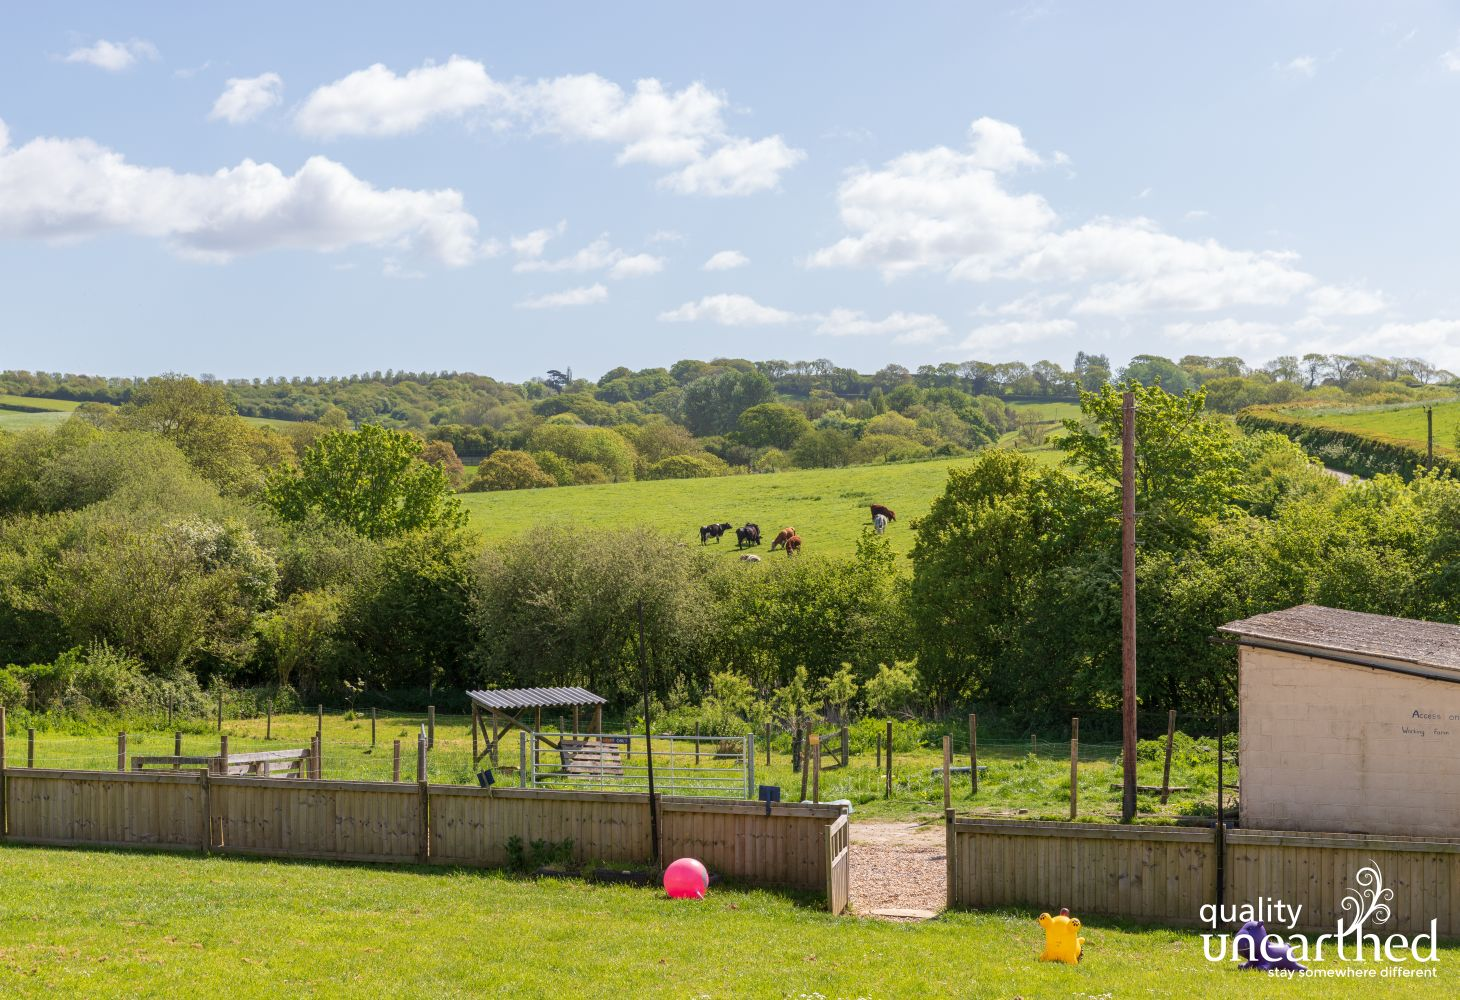 Family Yurts - The Enchanted Wood in Isle of Wight